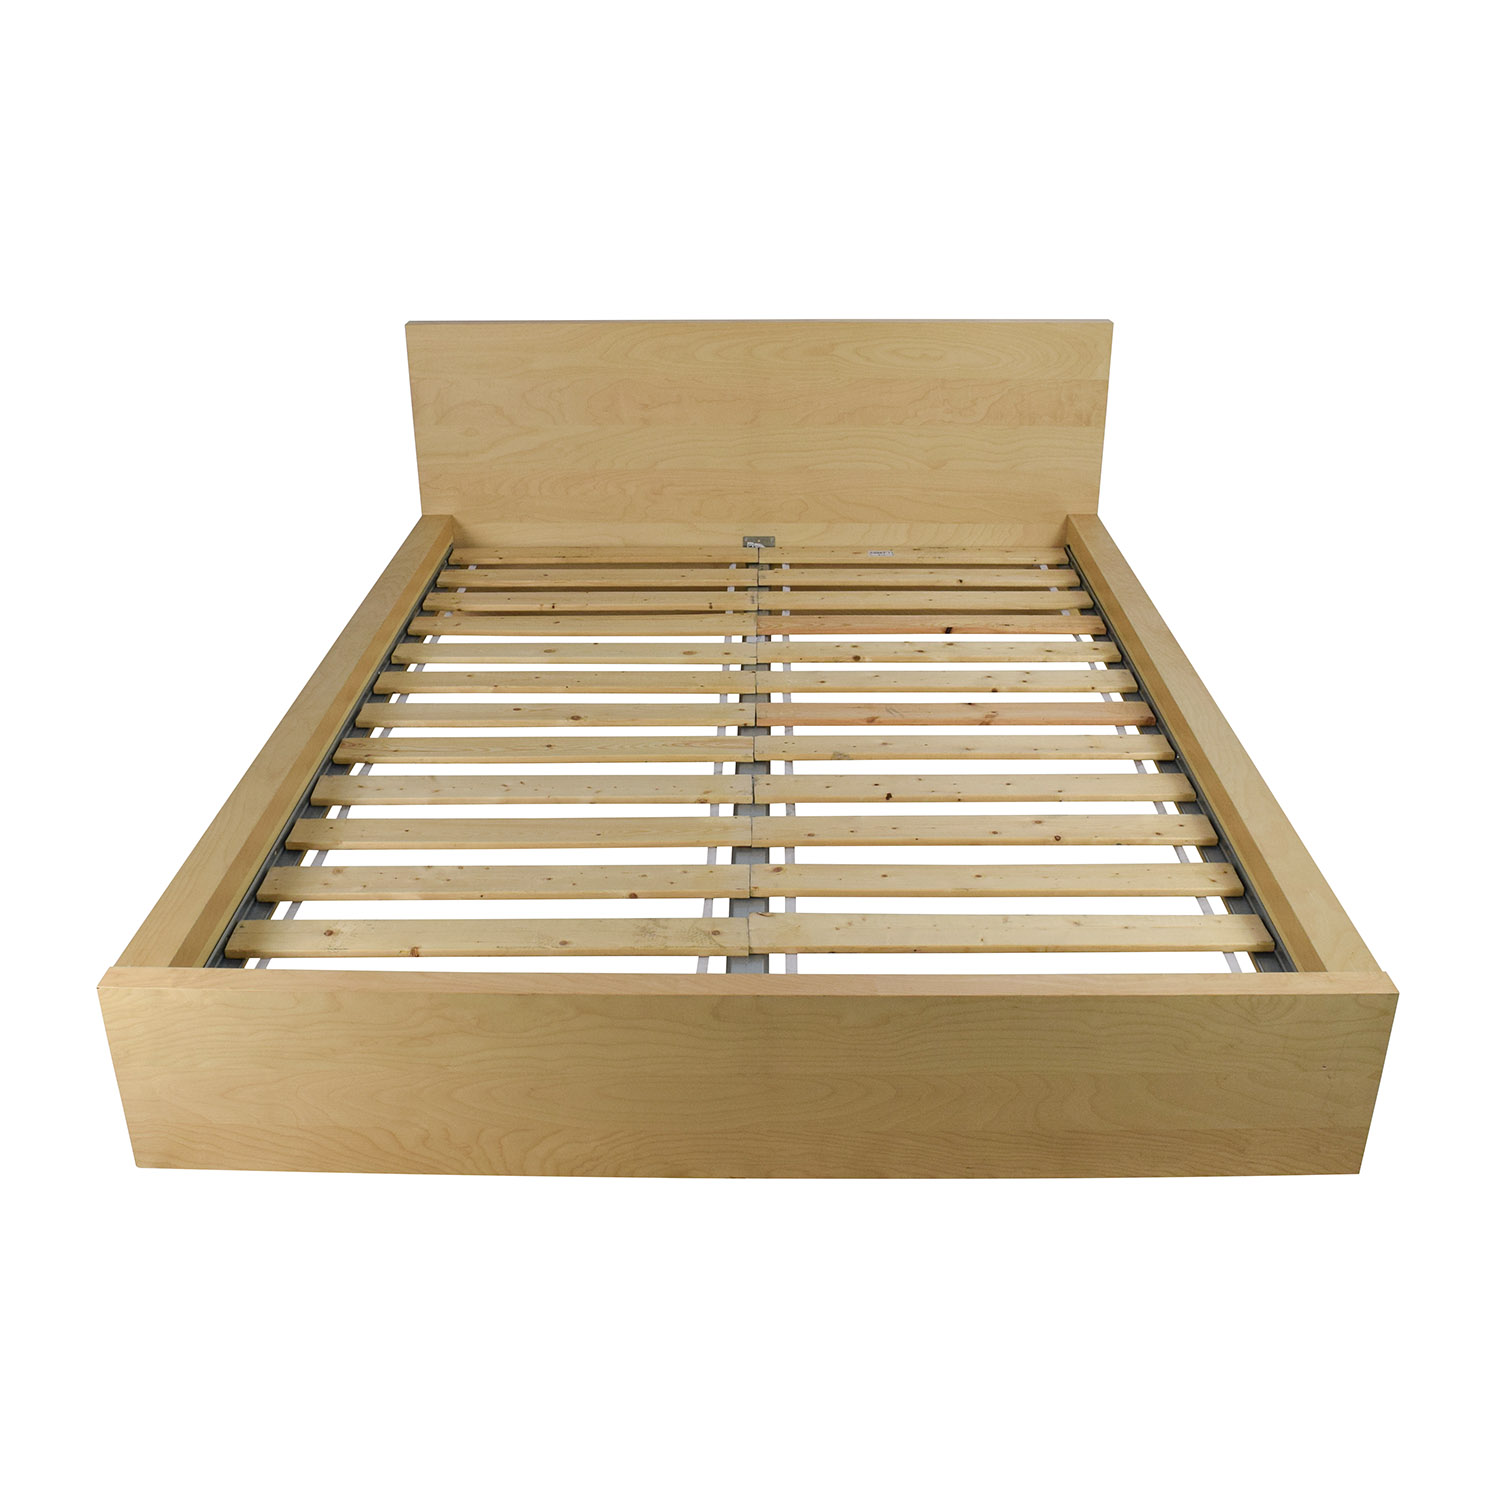 ikea ikea sultan queen bed frame for sale - Ikea Queen Bed Frames